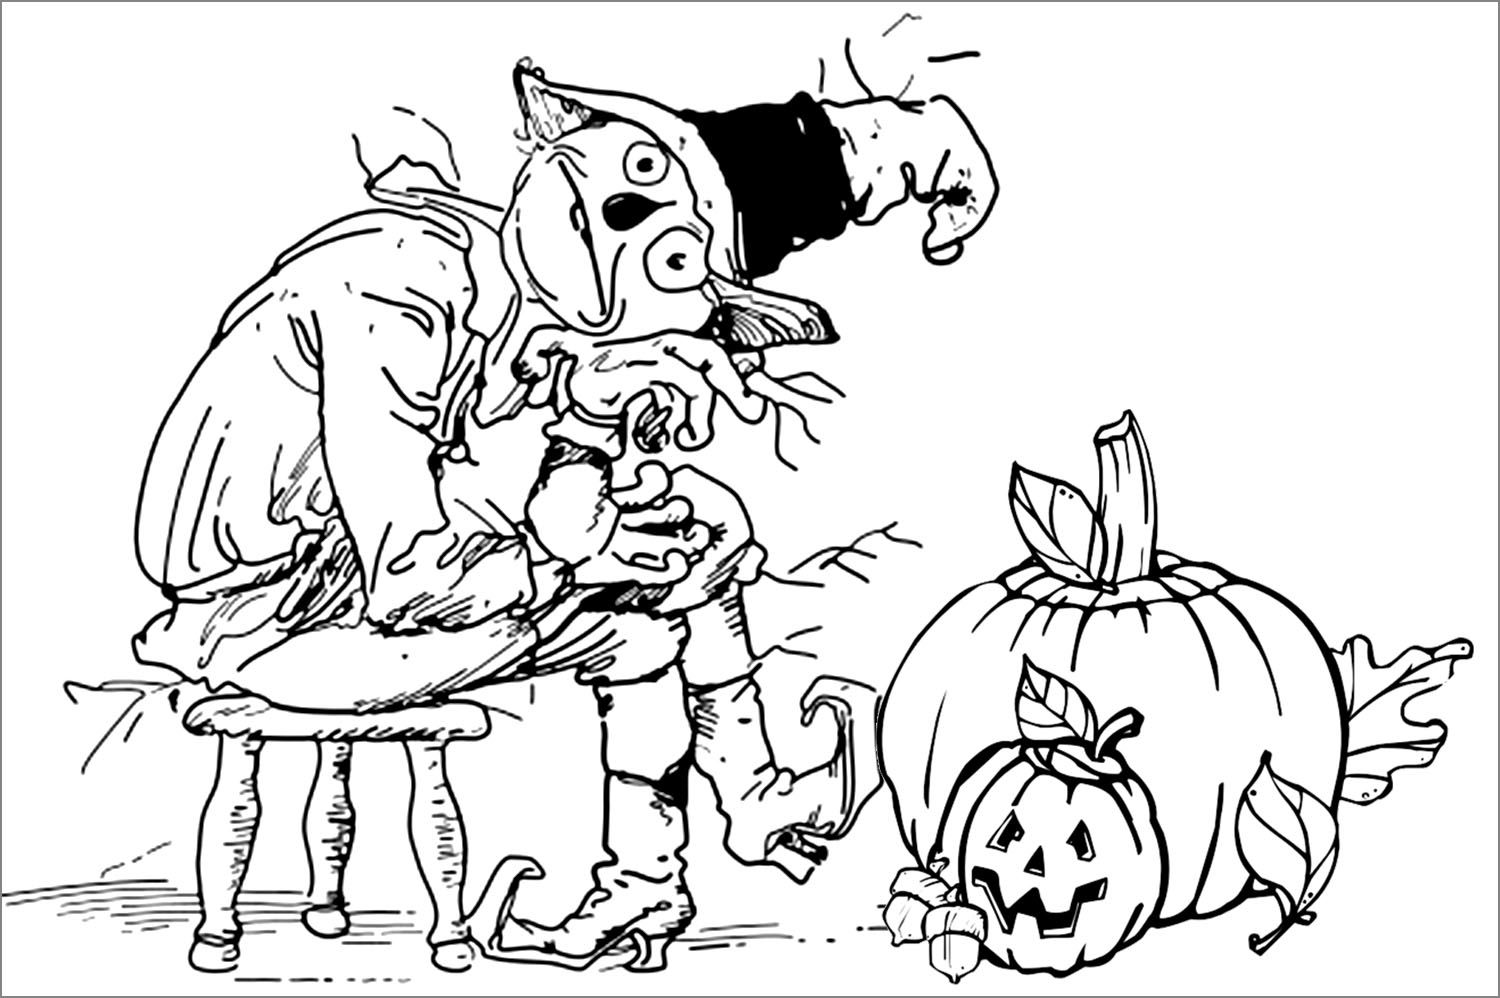 Sitting Scarecrow And Pumpkin Coloring Sheet Id 41985 Uncategorized Halloween Coloring Scary Halloween Coloring Pages Halloween Coloring Pages